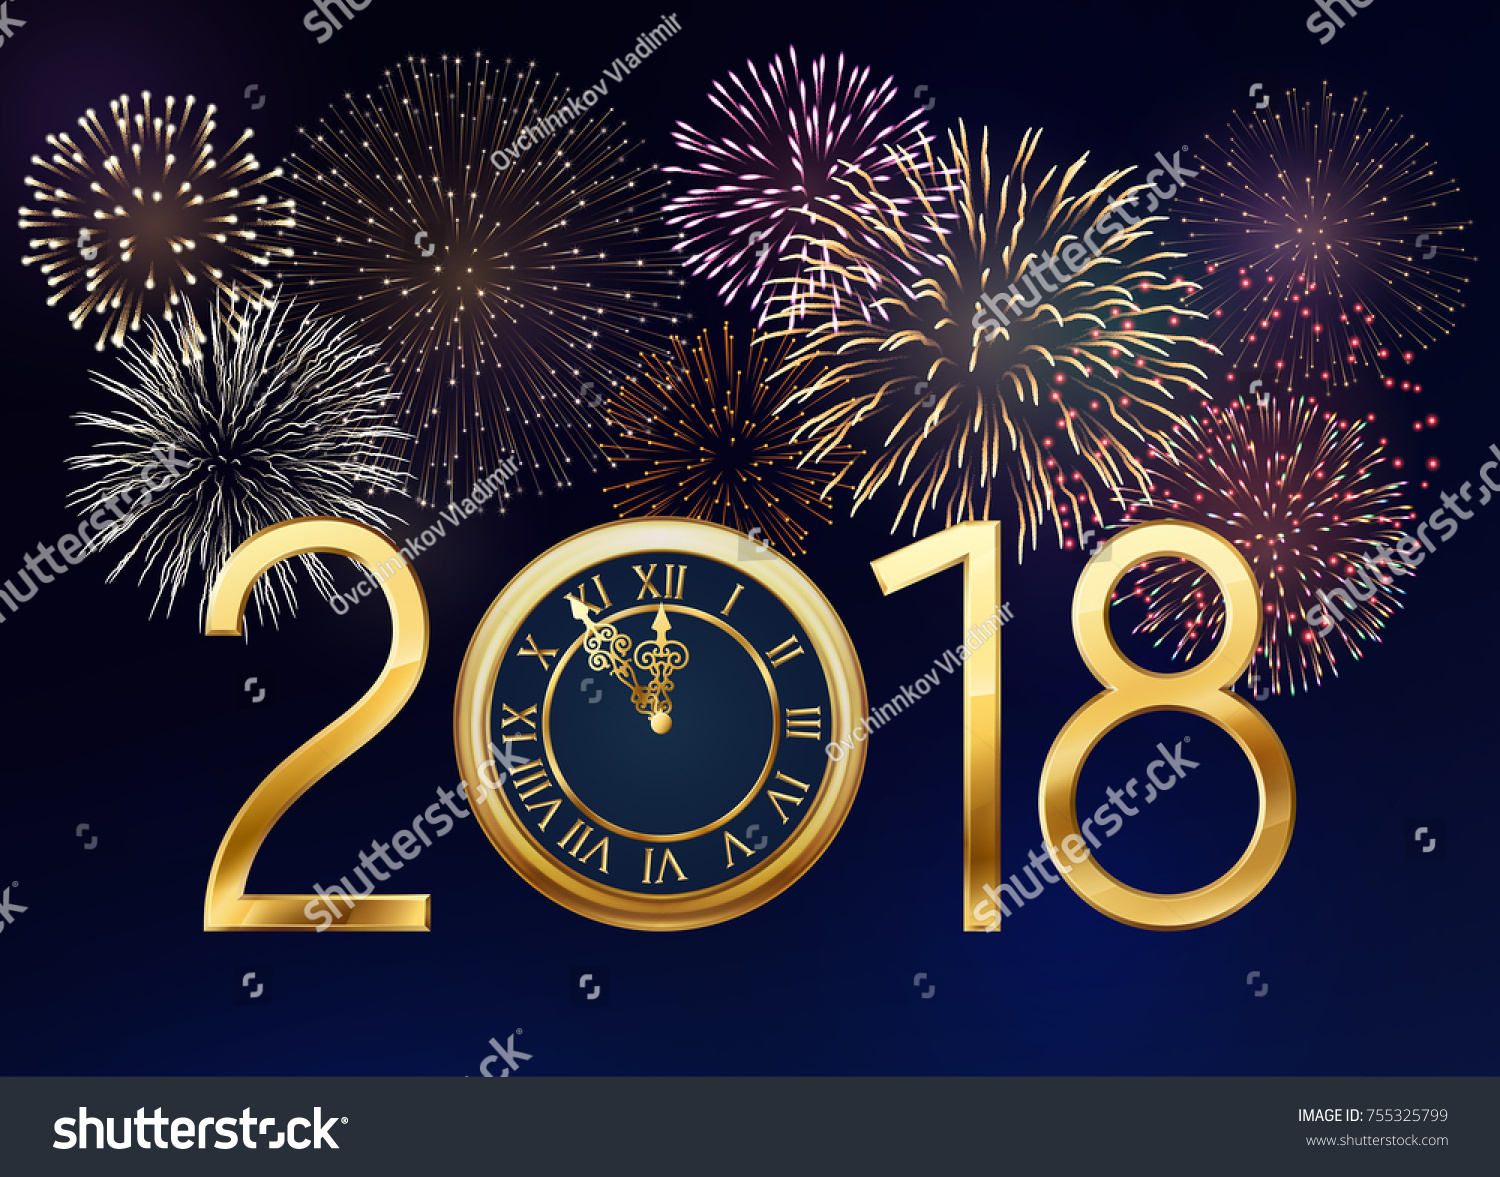 2018 new year greeting card golden stock vector 755325799 shutterstock 2018 new year greeting card with golden clock and fireworks eps 10 contains transparency kristyandbryce Images